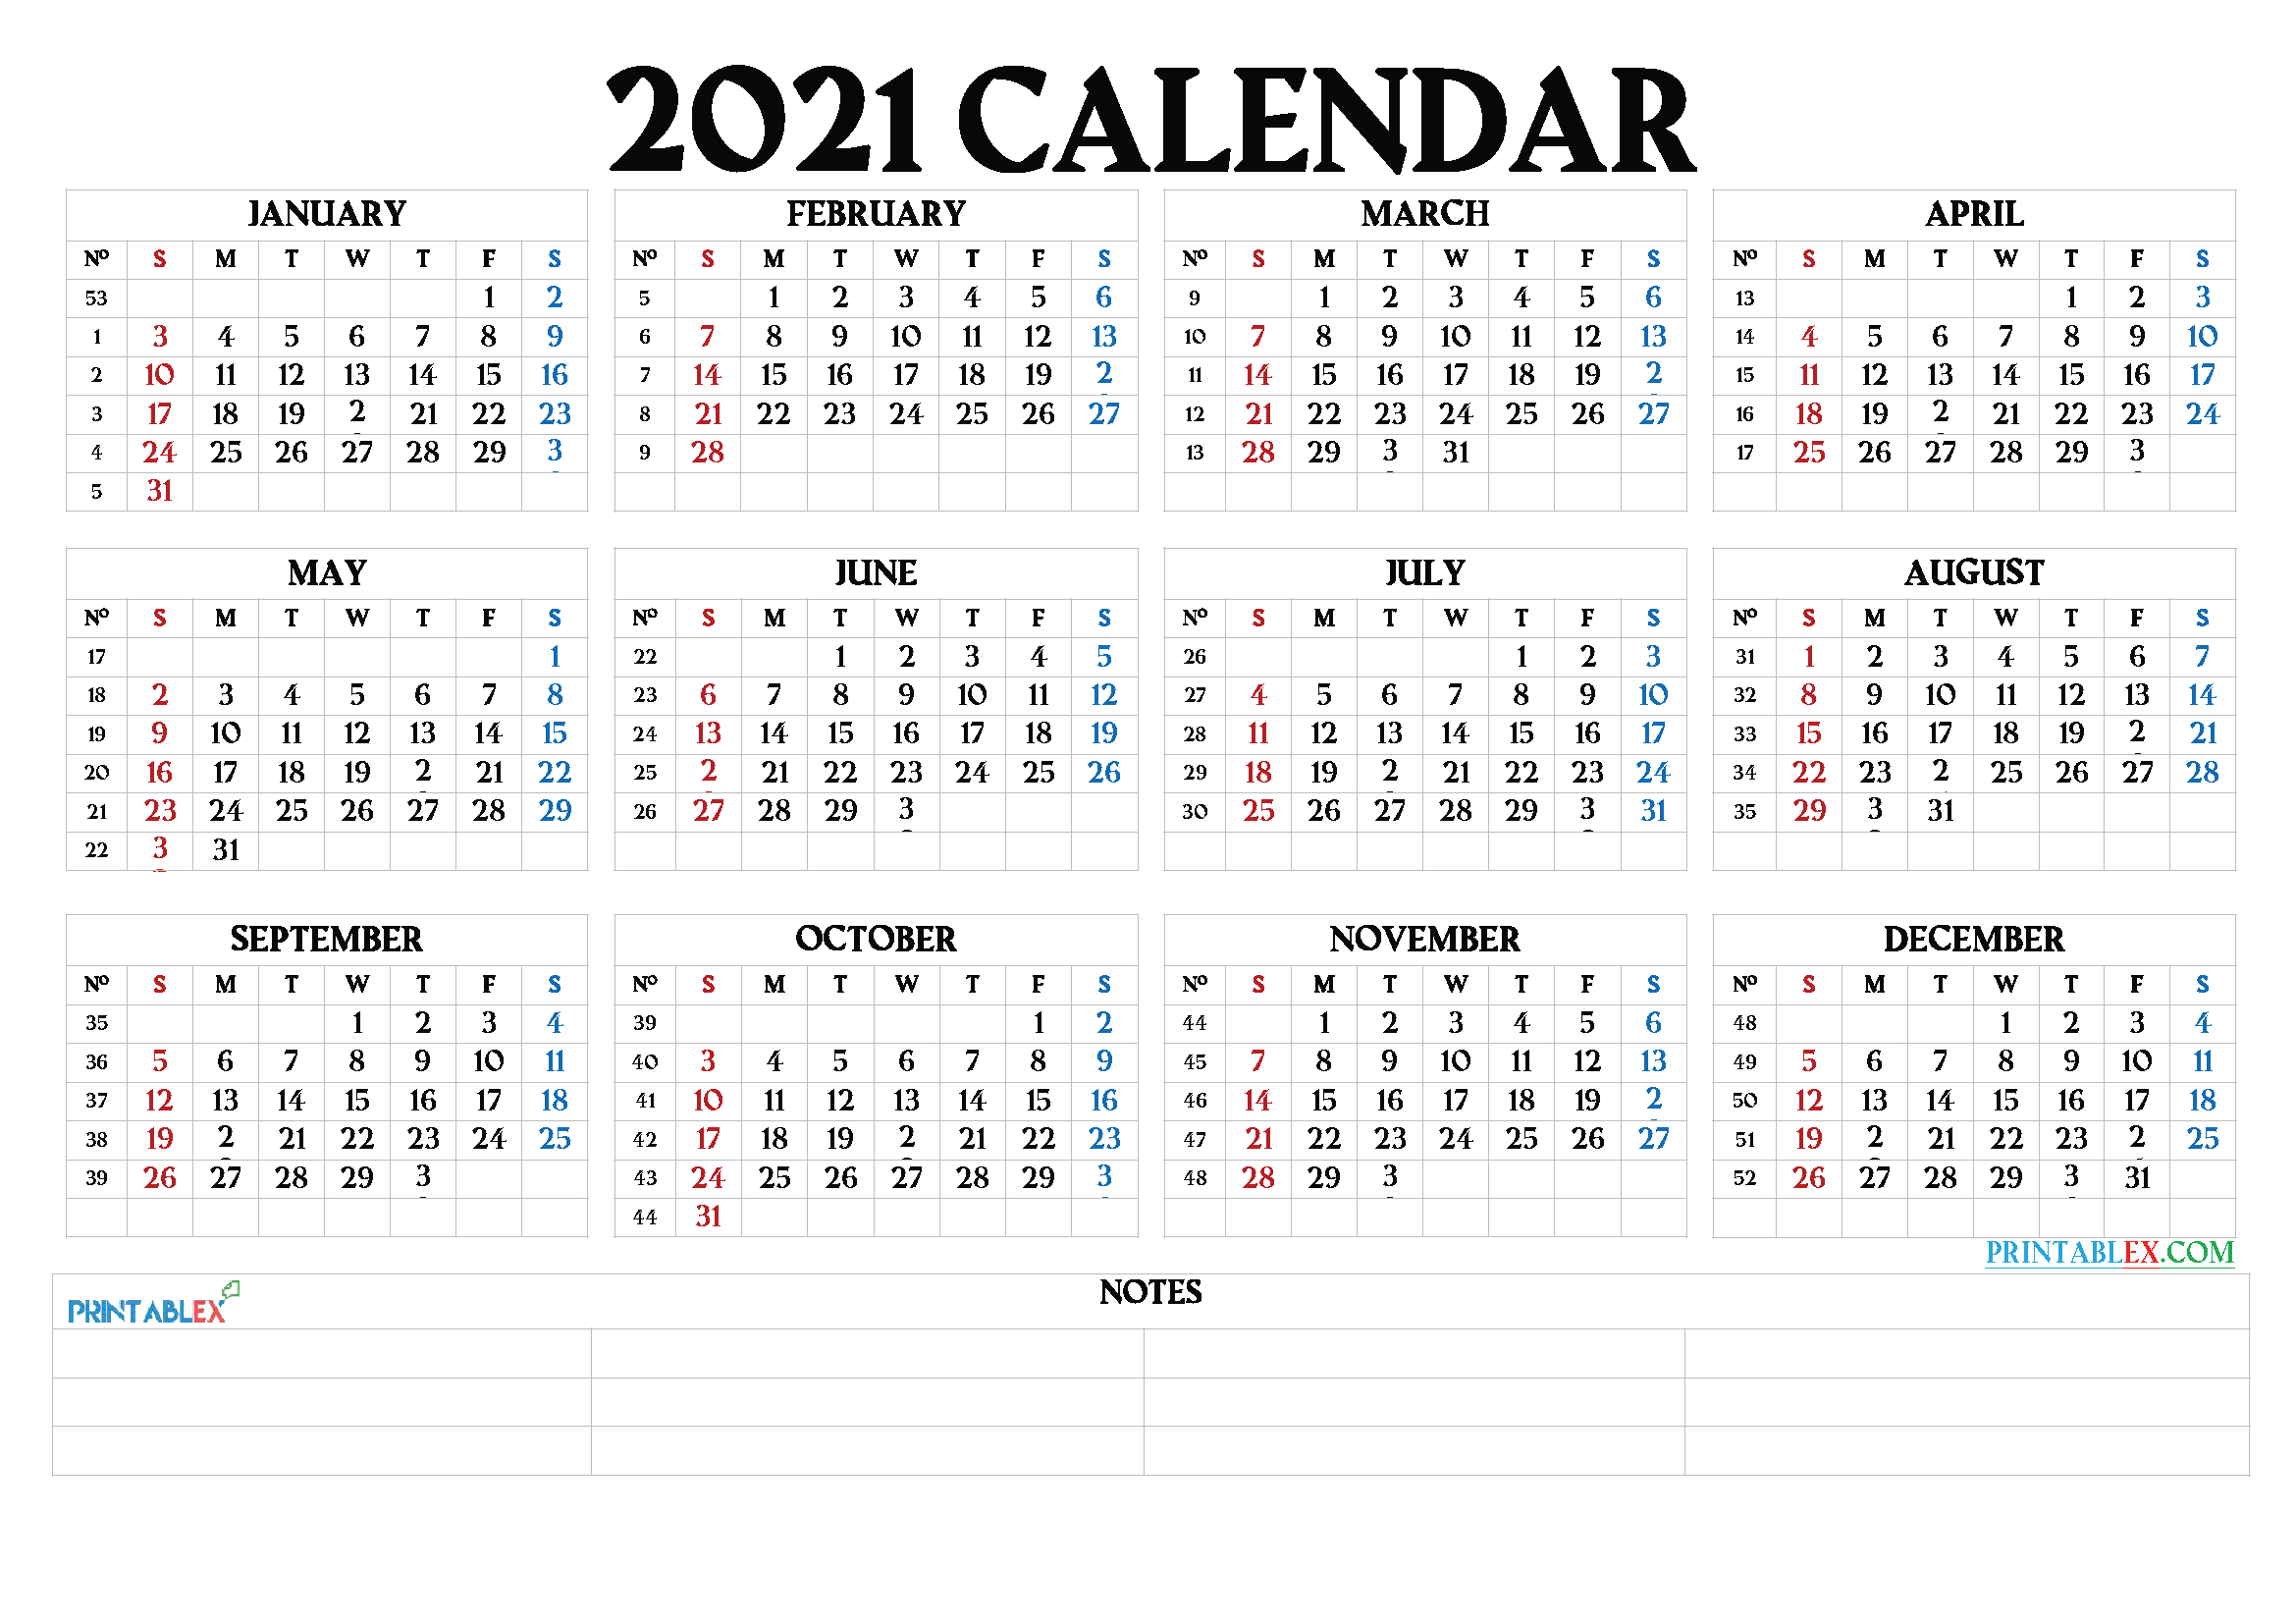 Free 2021 Yearly Calender Template - 2021 Printable Yearly Calendar Free Hipi Info : Below Are